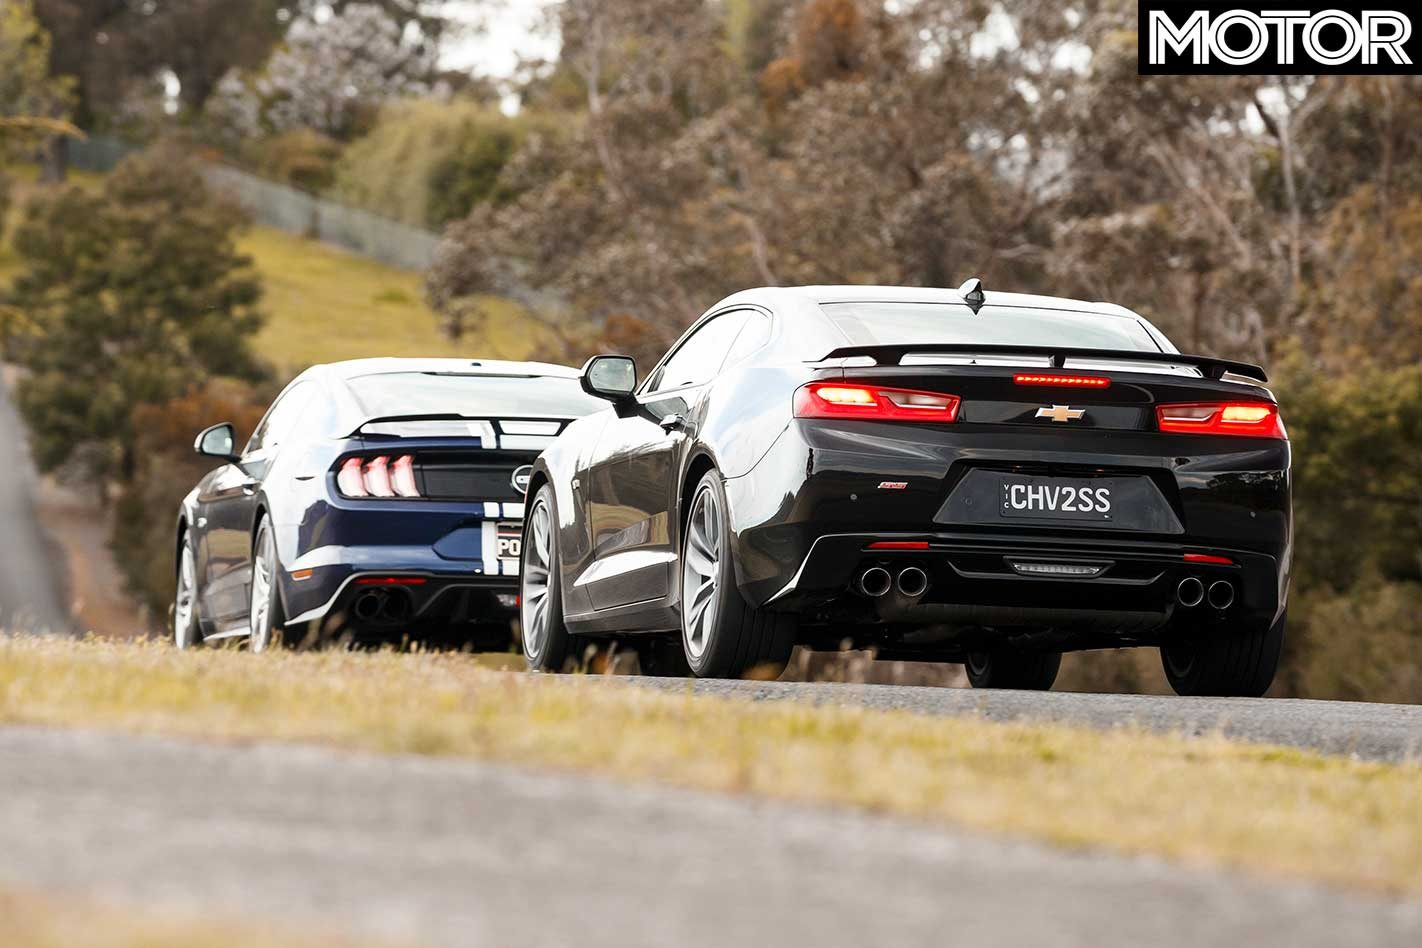 2018 Chevrolet Camaro 2SS vs Ford Mustang GT comparison review